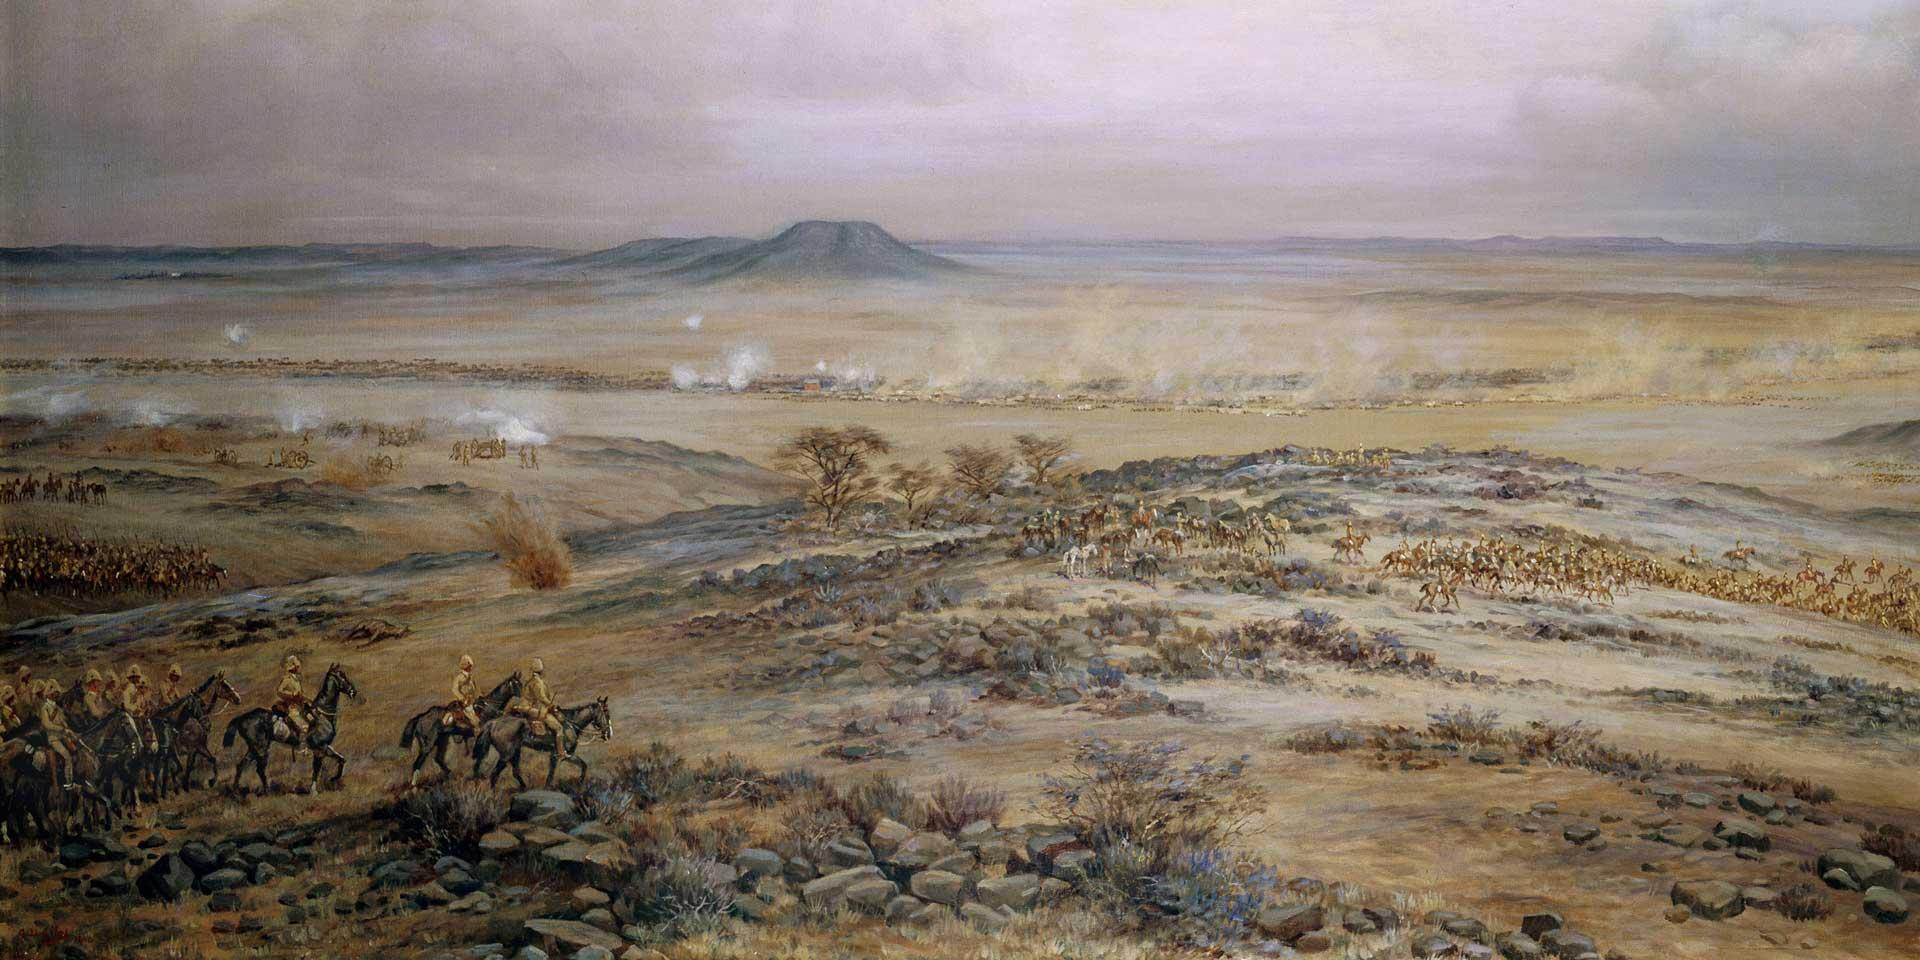 The attack on General Piet Cronje's force at Vedute Drift near Paardeberg, February 1900